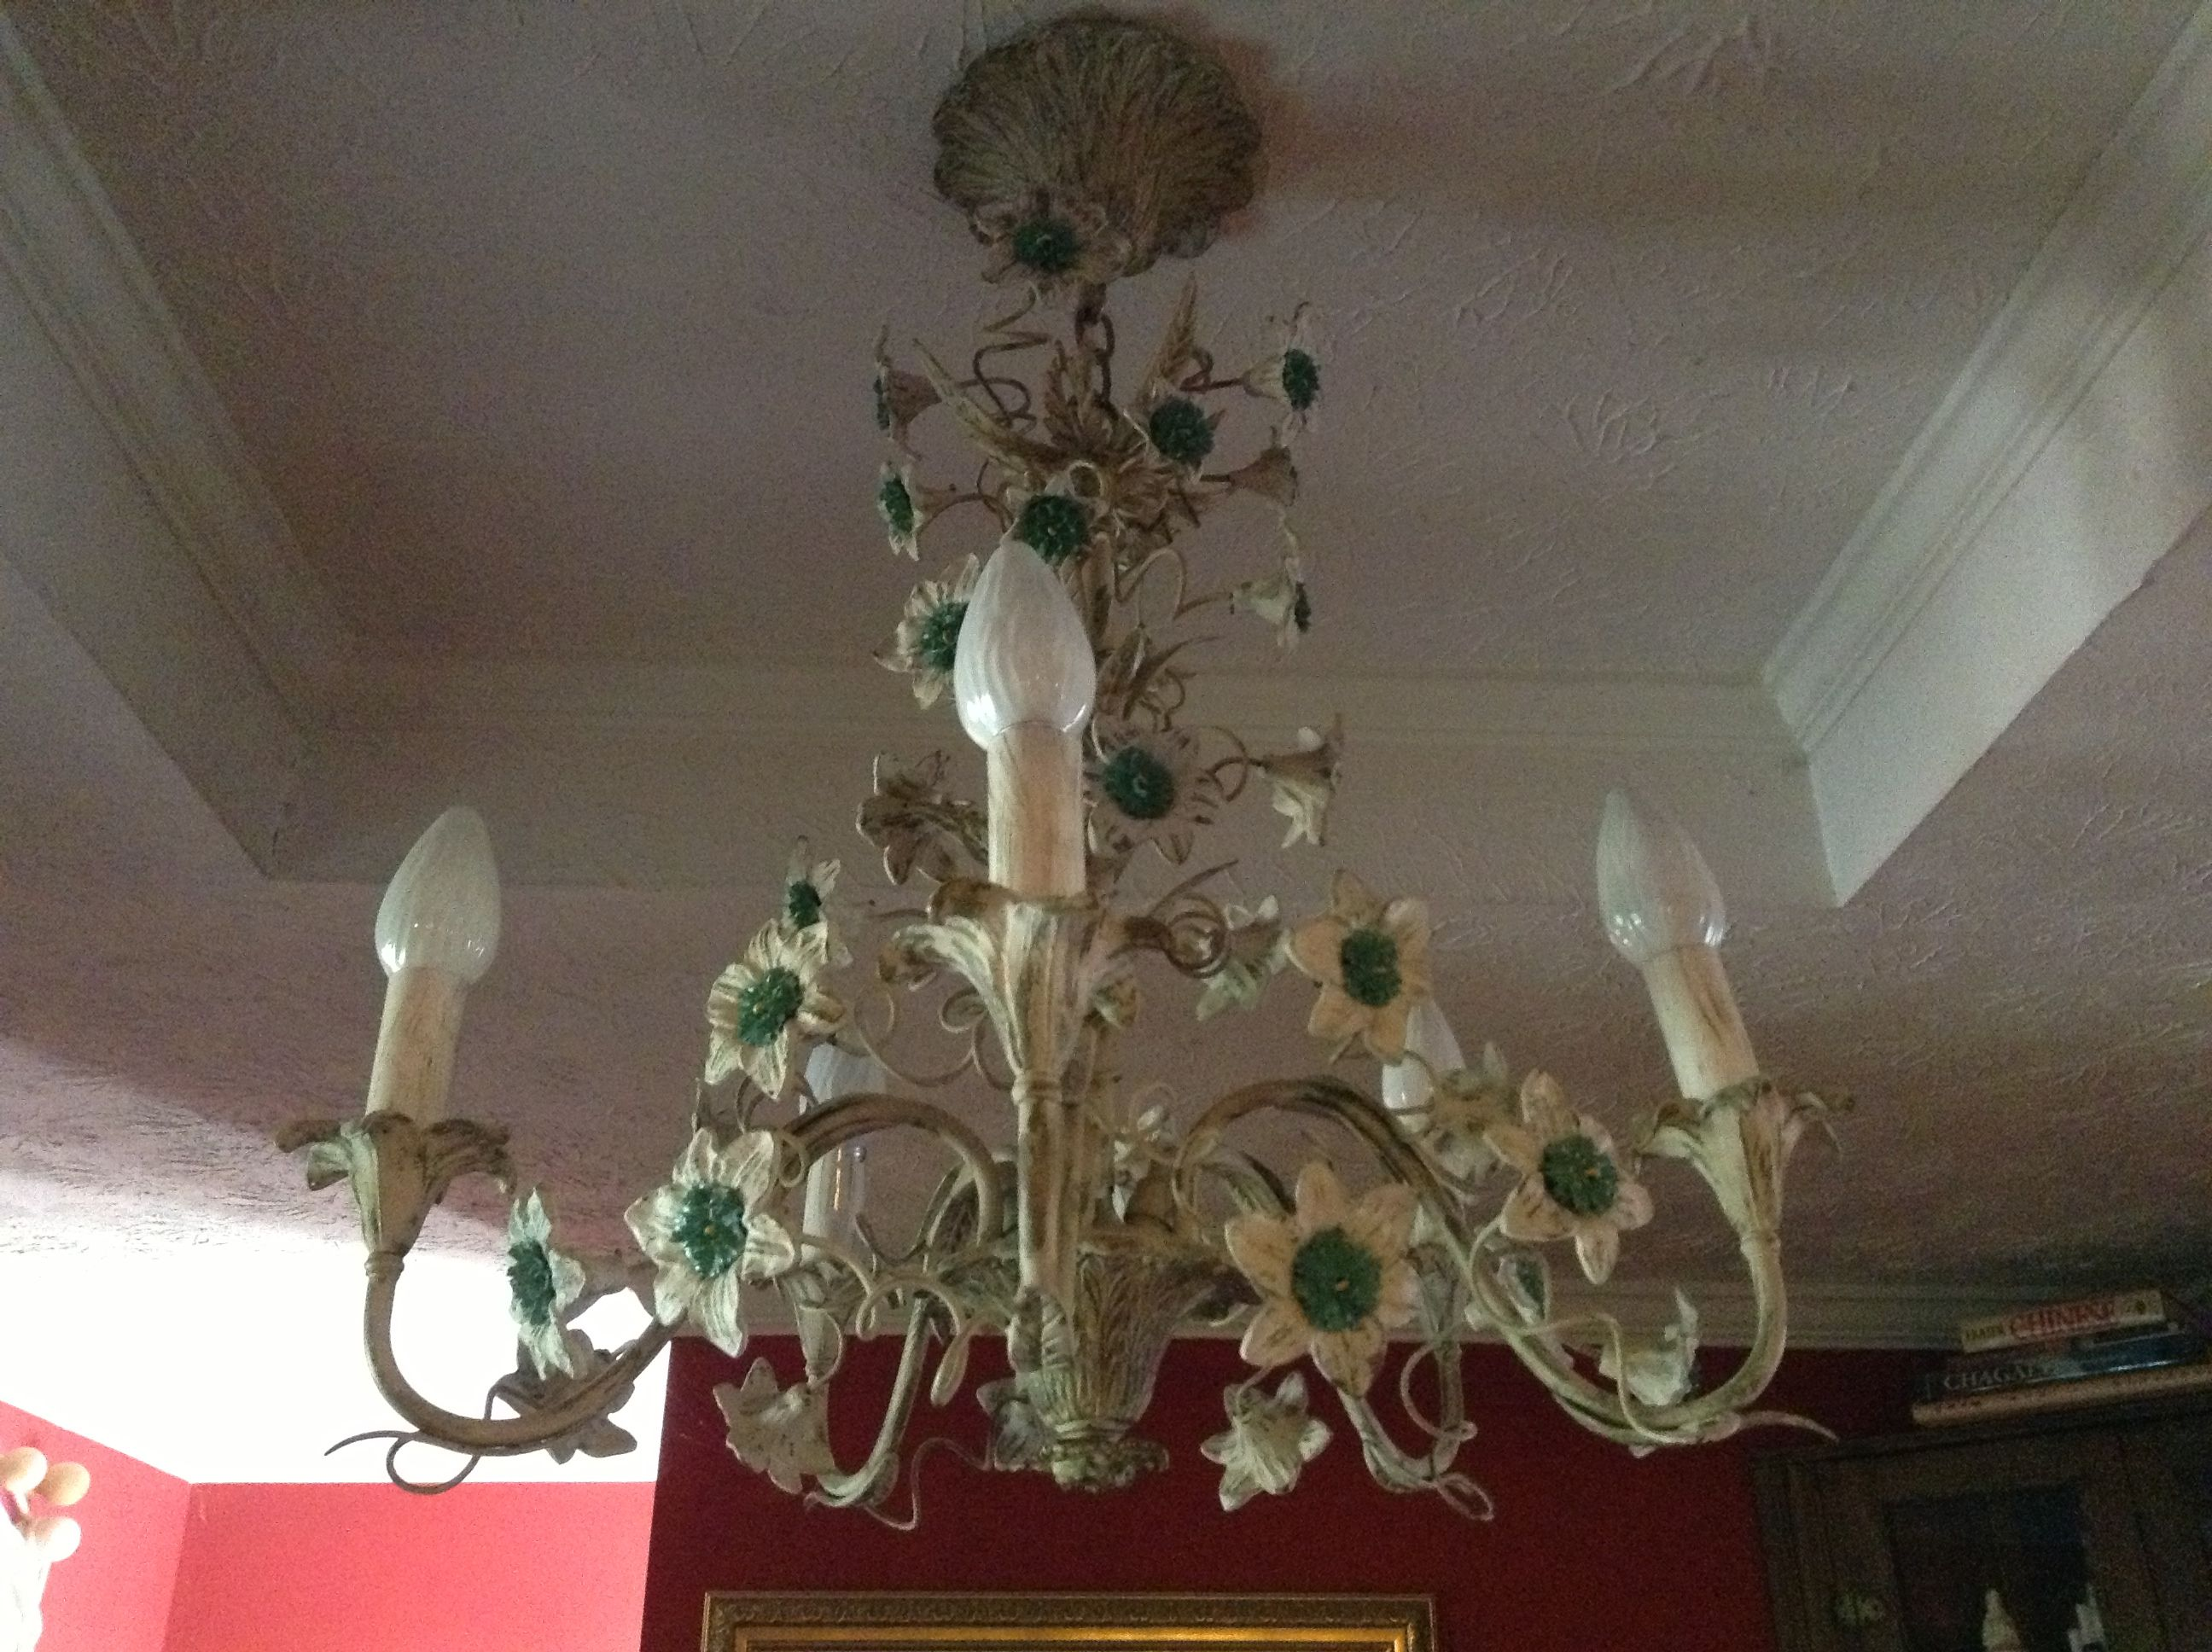 Cool funky chandelier my husband s great aunt gave us